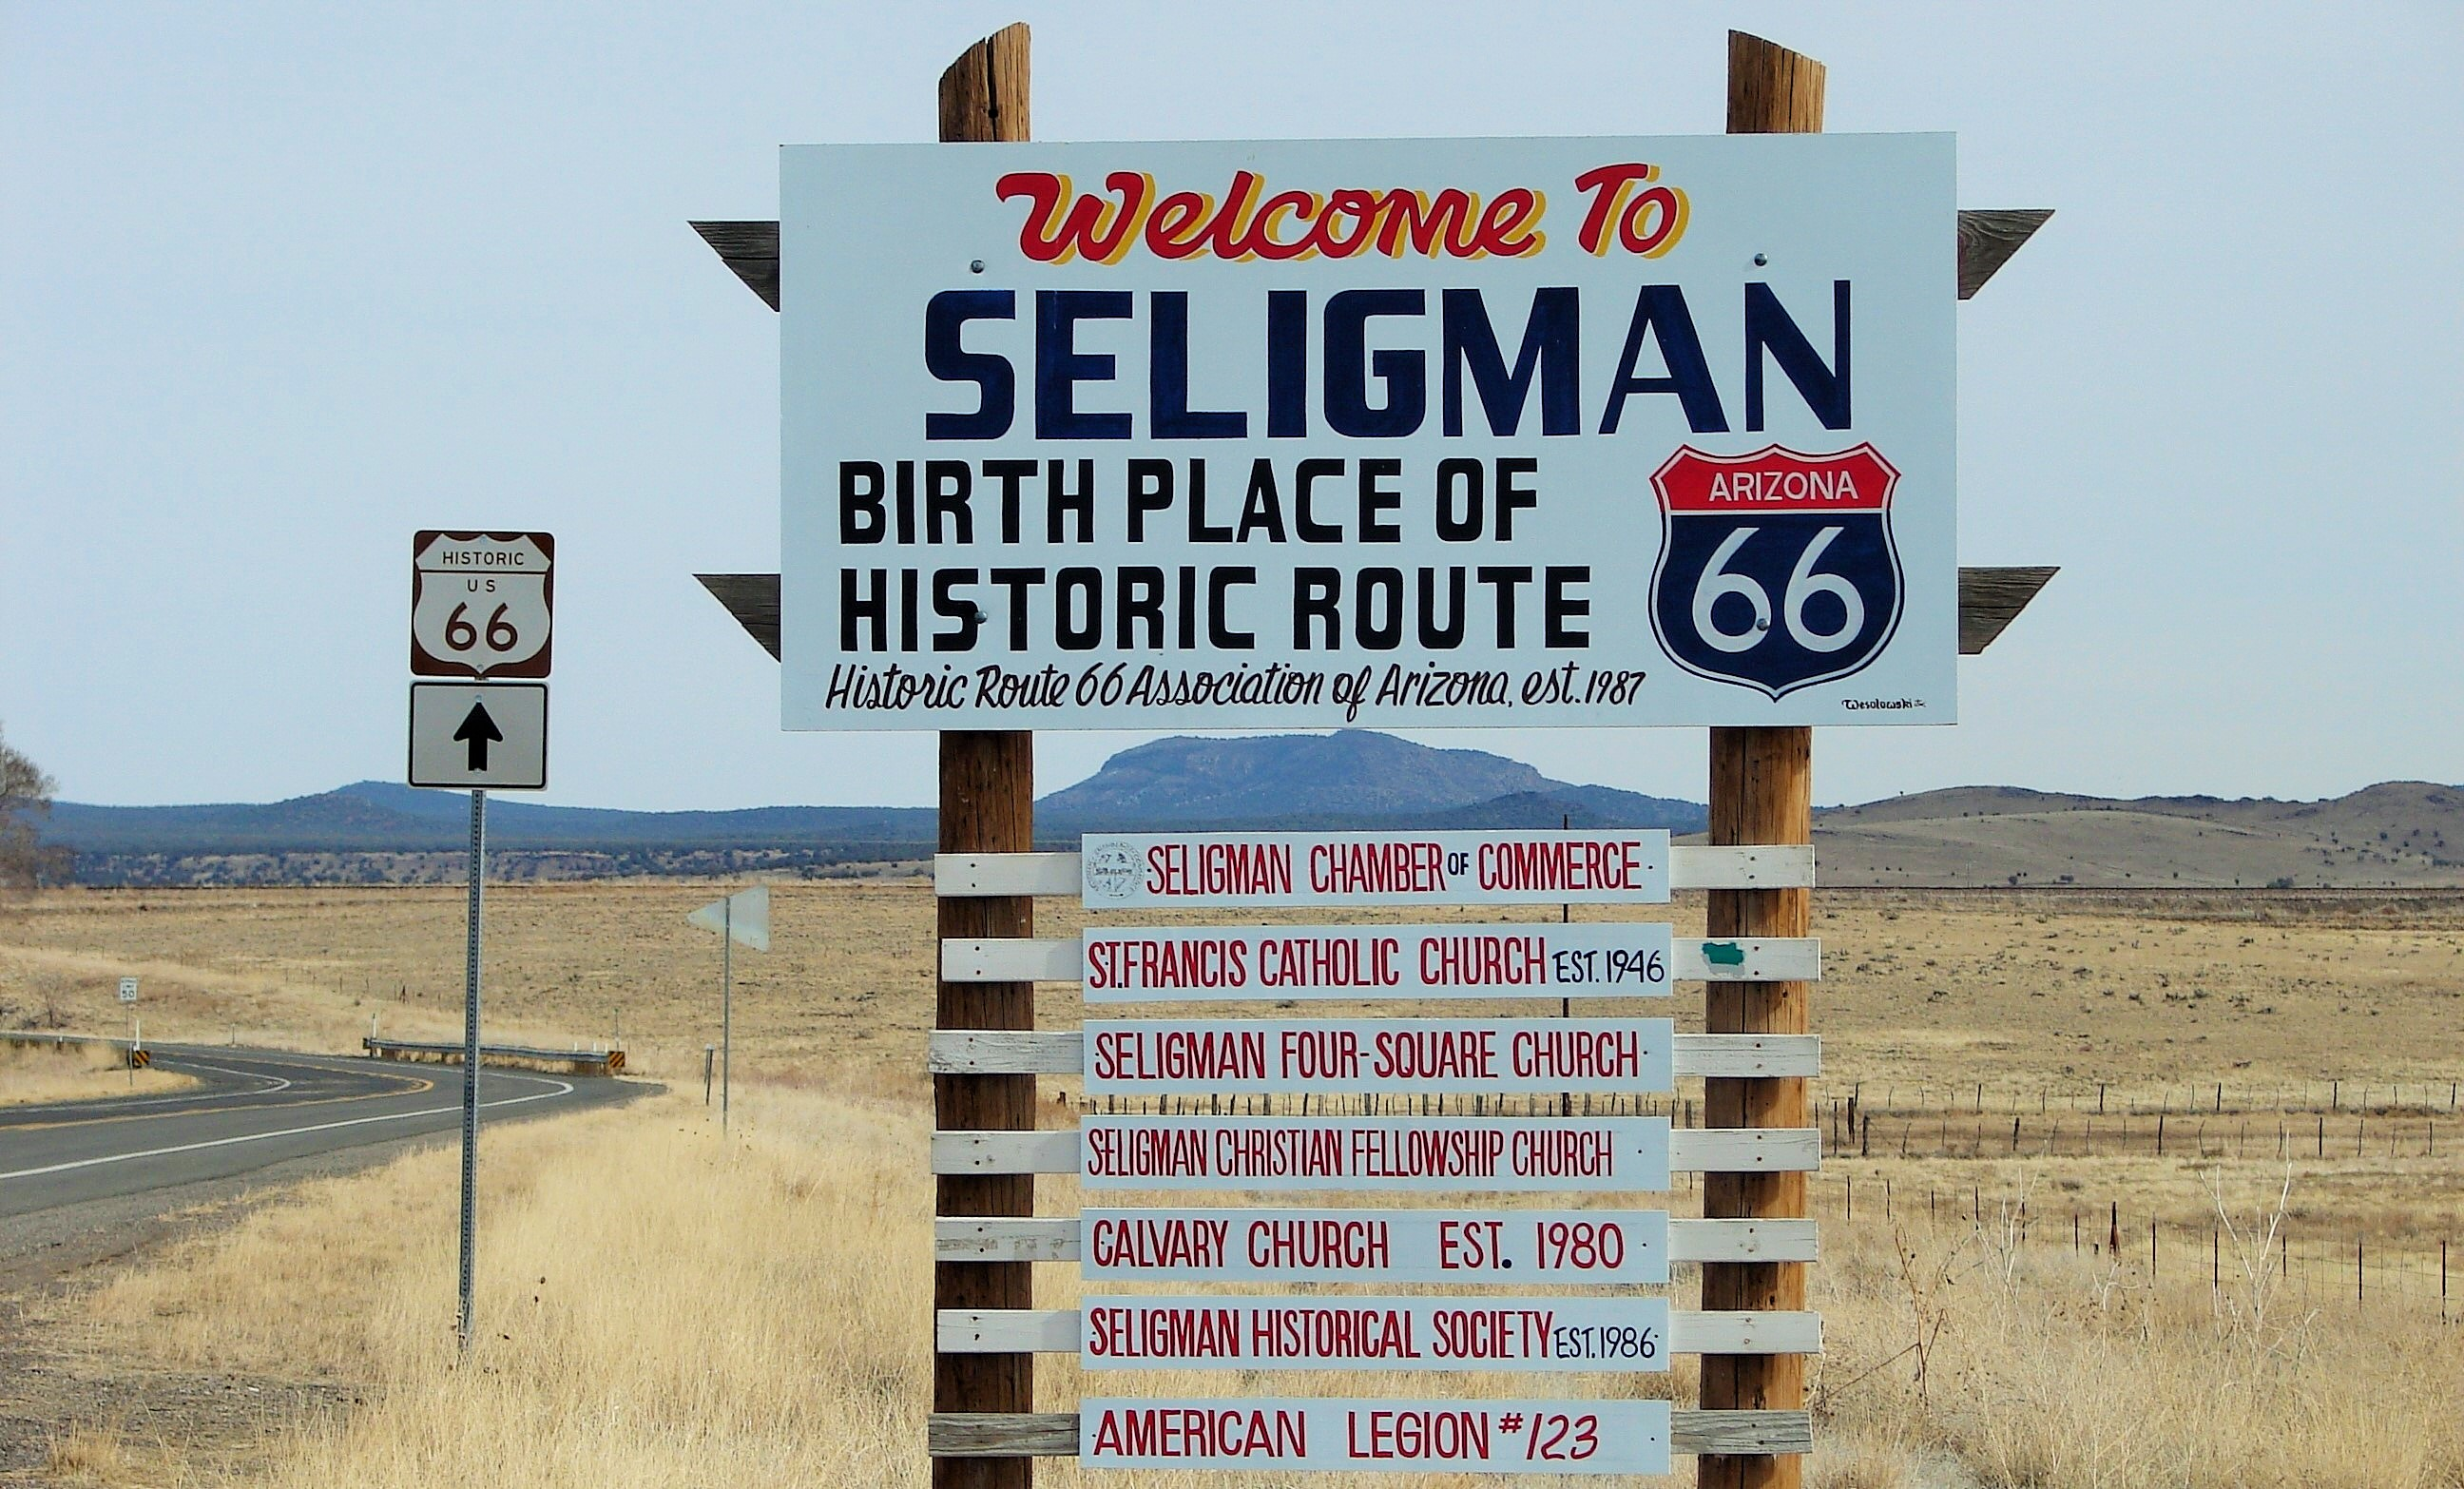 Seligman Arizona The Birthplace of Historic Route 66 Sign